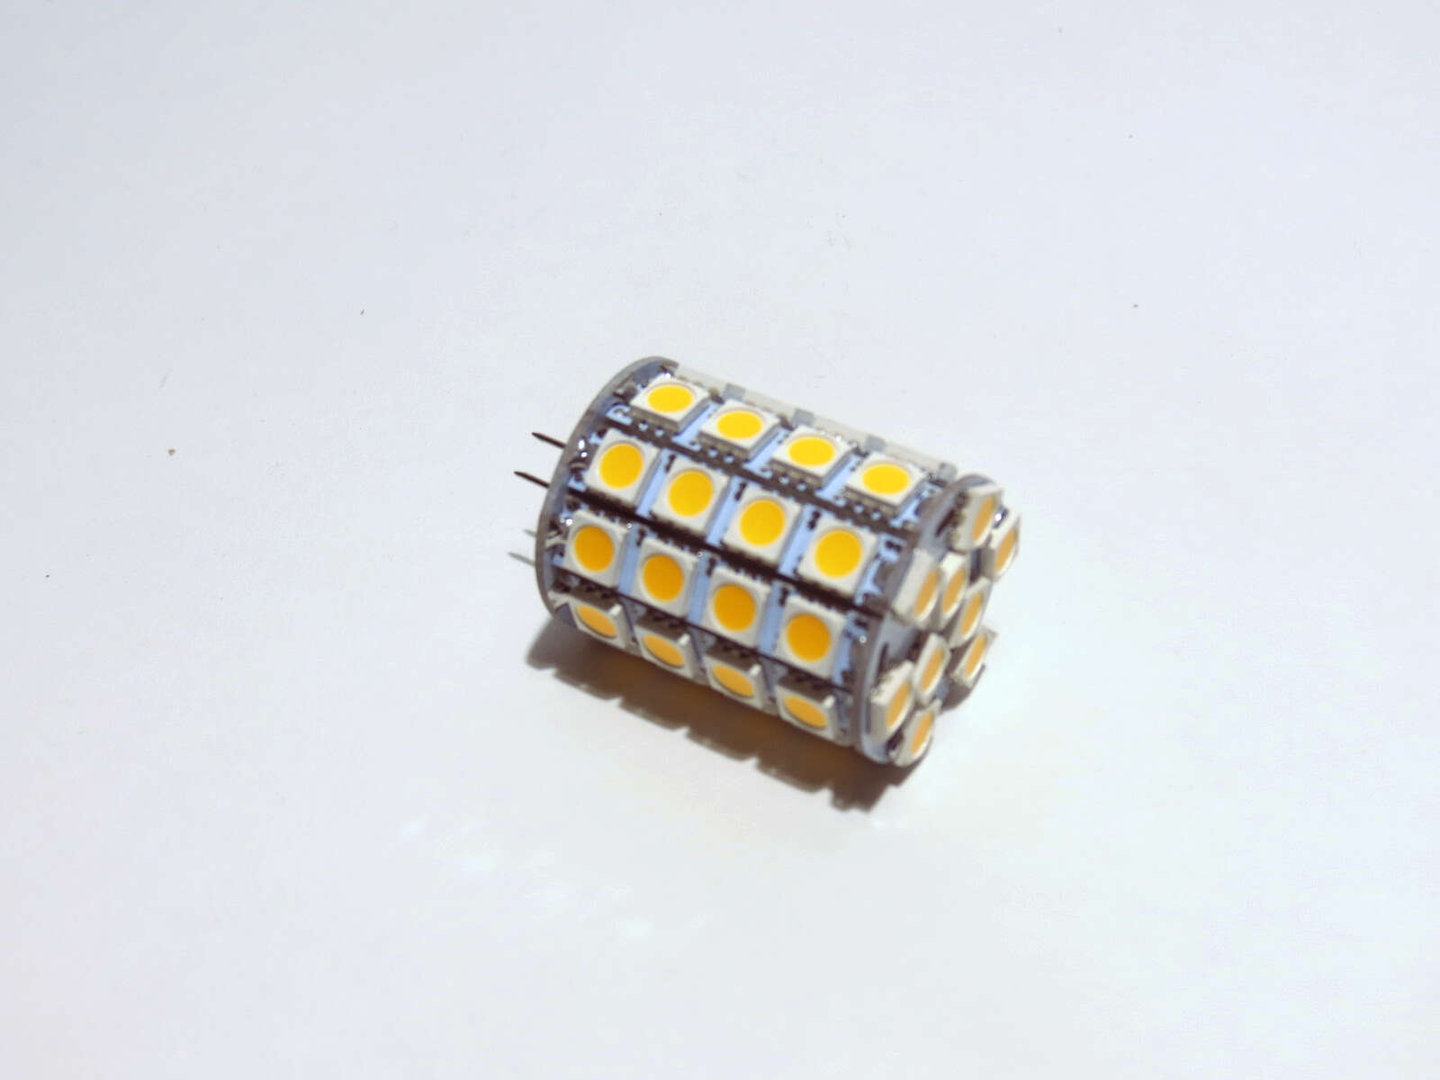 Stiftsockel GY6.35 49 LED SMD 540L 10-30V warmweiß